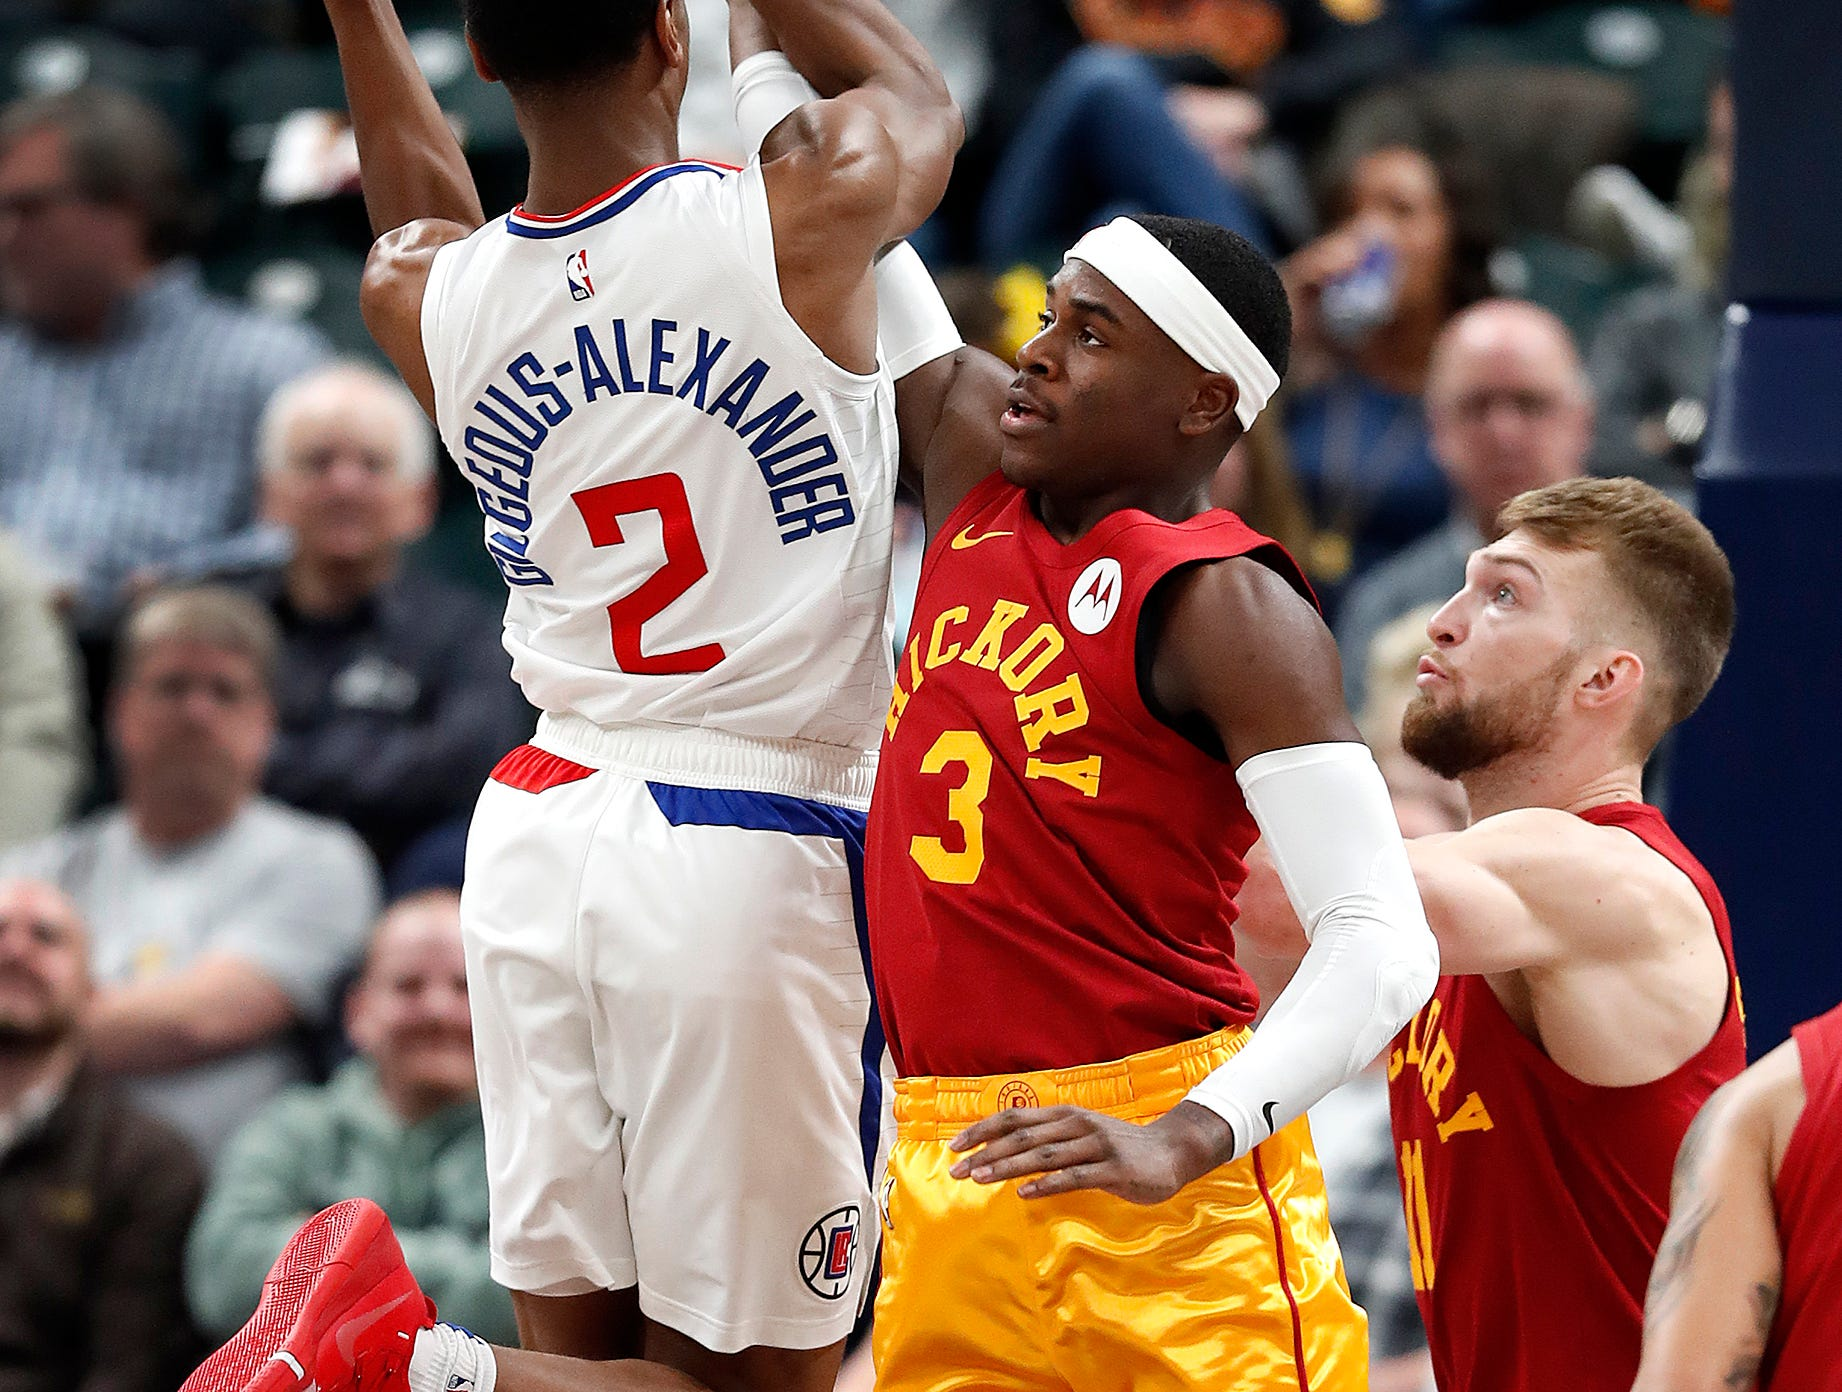 Indiana Pacers guard Darren Collison (2) defends the shot by LA Clippers guard Shai Gilgeous-Alexander (2) in the second half of their game at Bankers Life Fieldhouse on Thursday, Feb. 7, 2019.